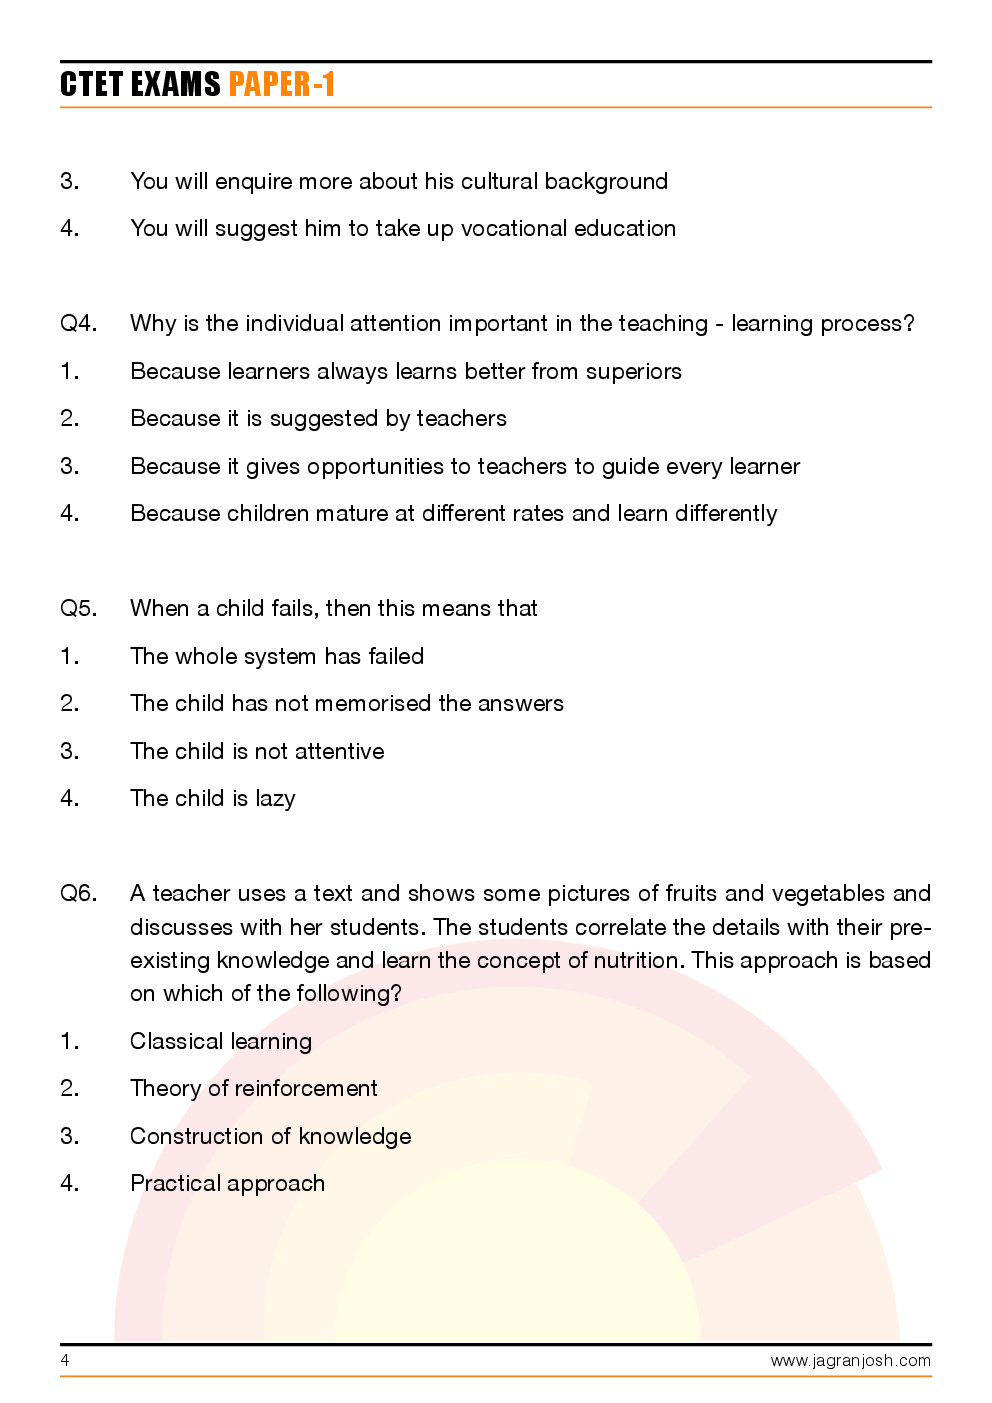 CTET Paper-1 Solved Questions and Answers - Page 4